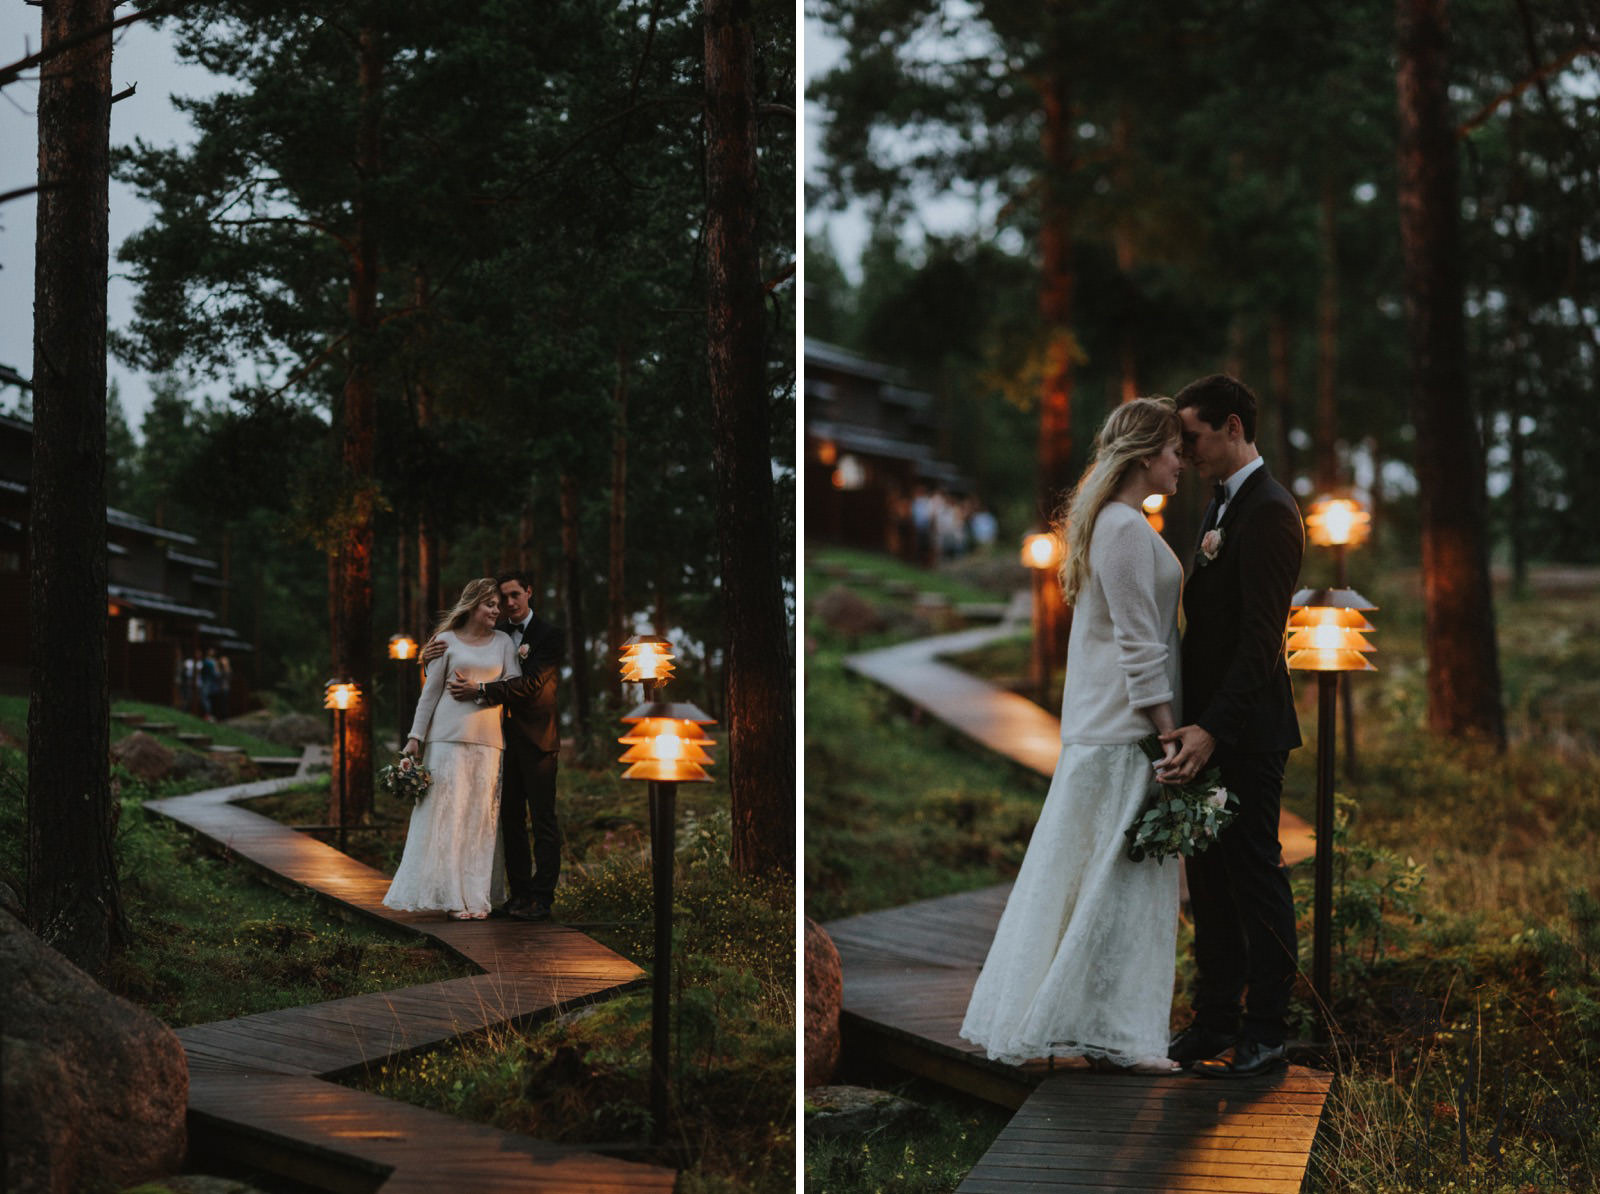 night wedding in Finland